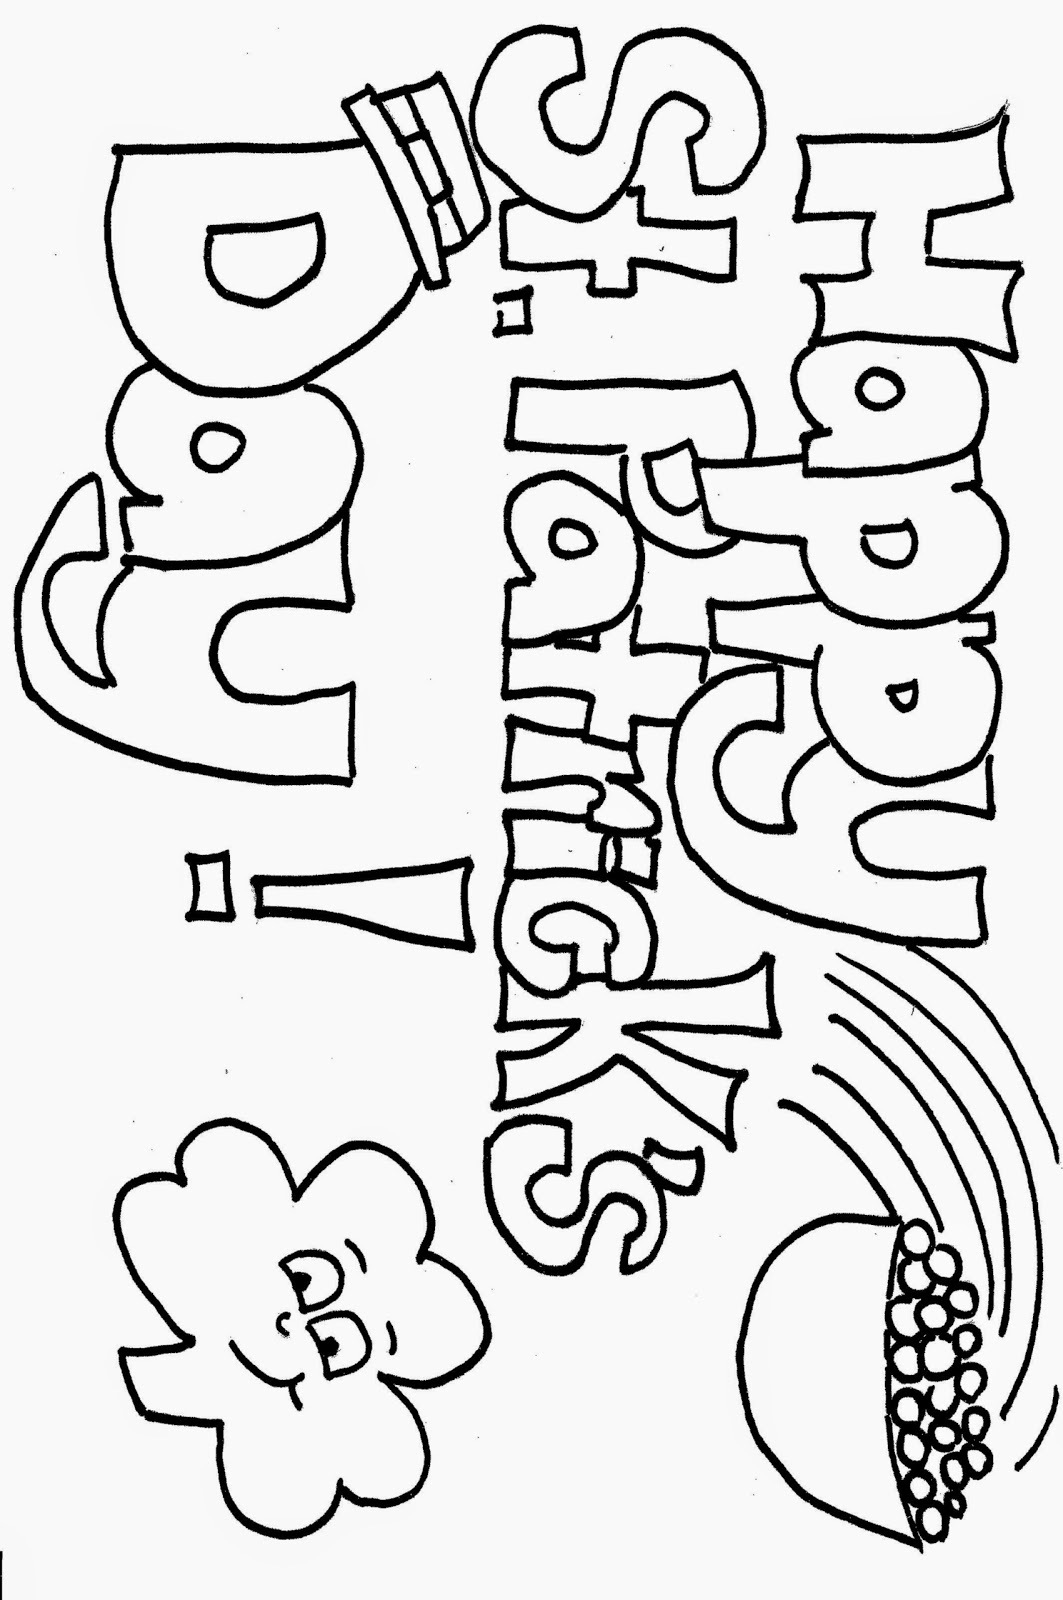 St patricks coloring sheets free coloring sheet for Free st patrick s day printable coloring pages